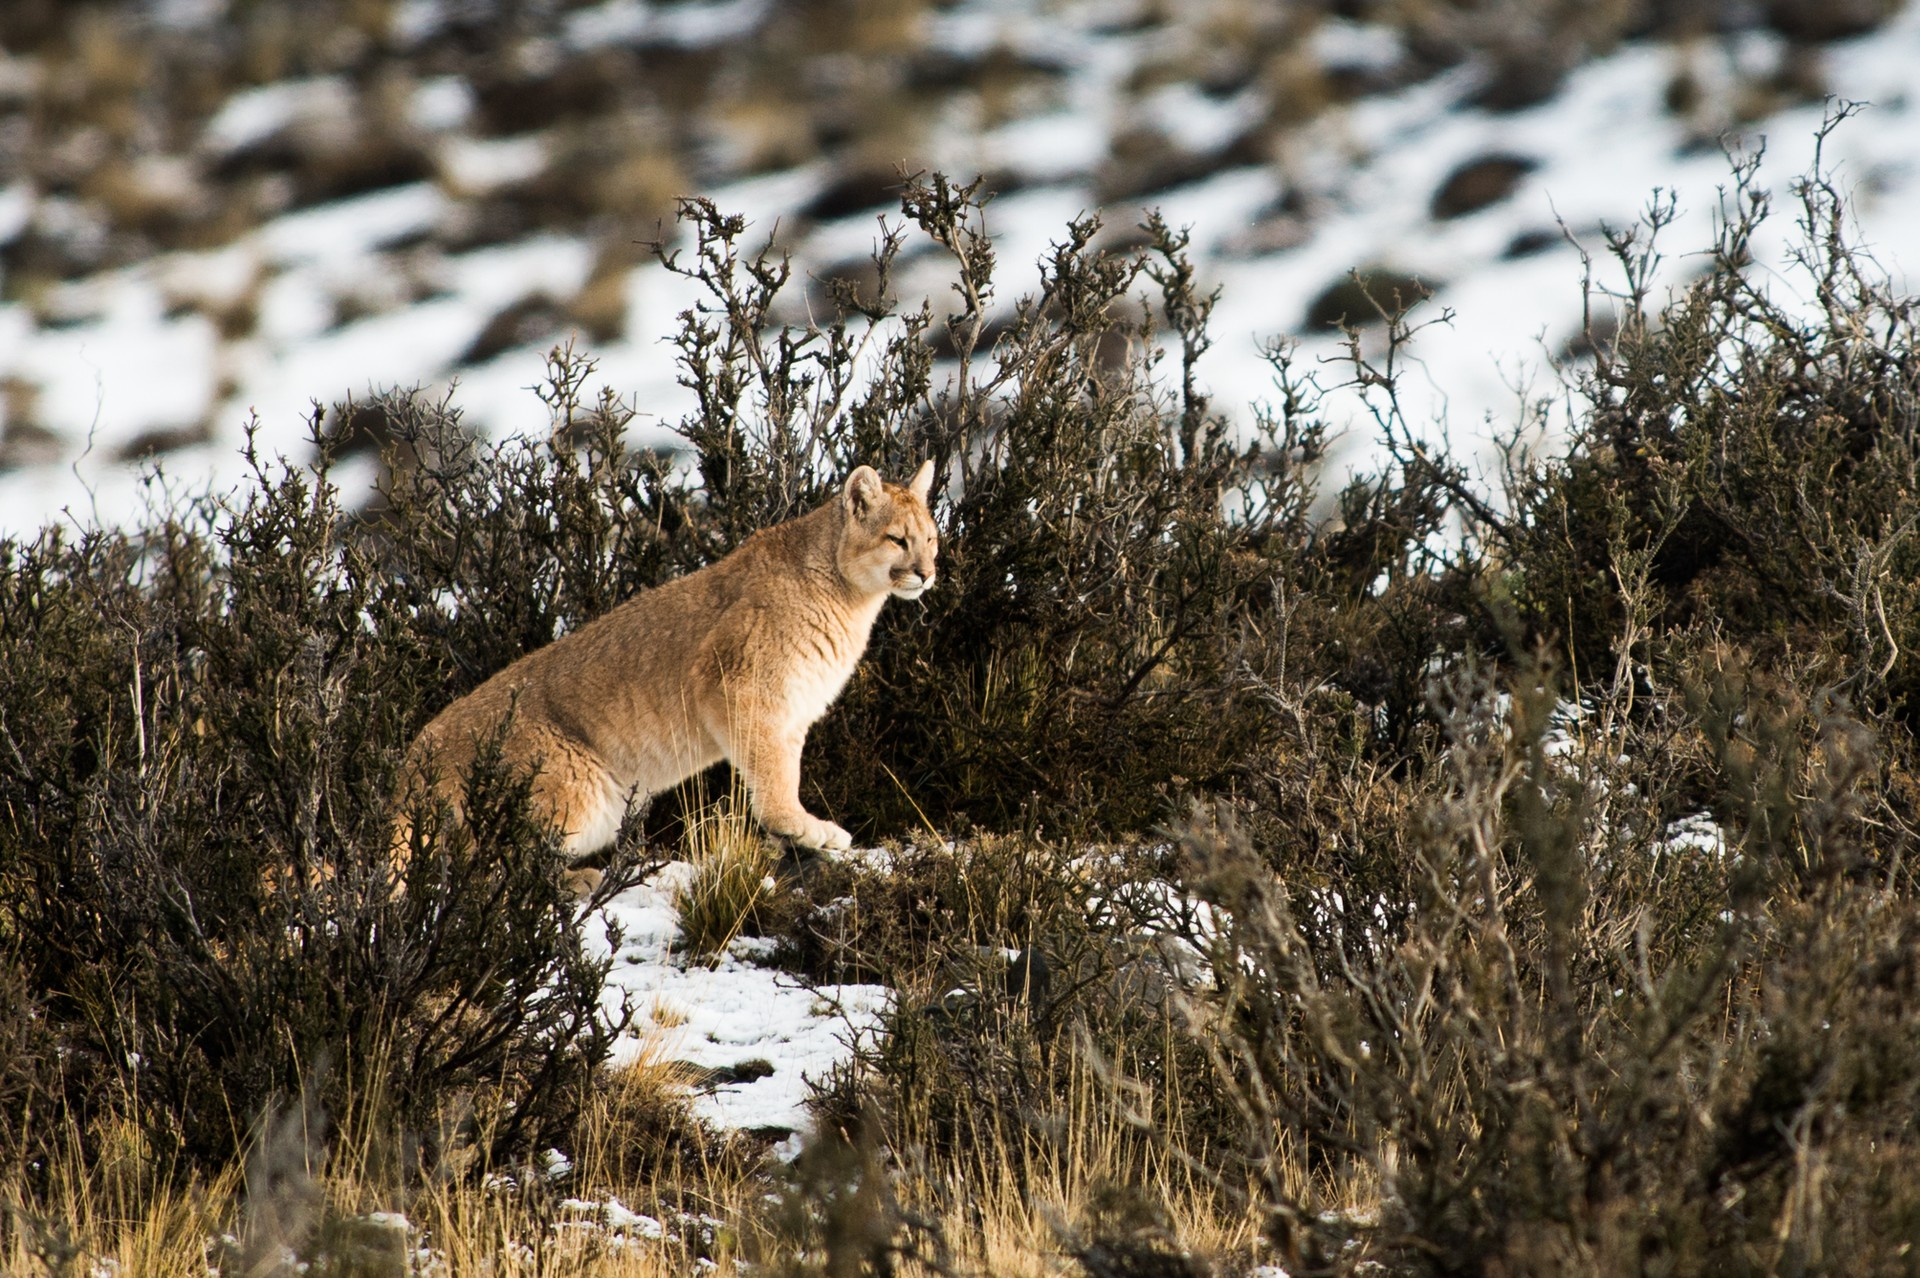 Puma in Torres del Paine National Park, Patagonia